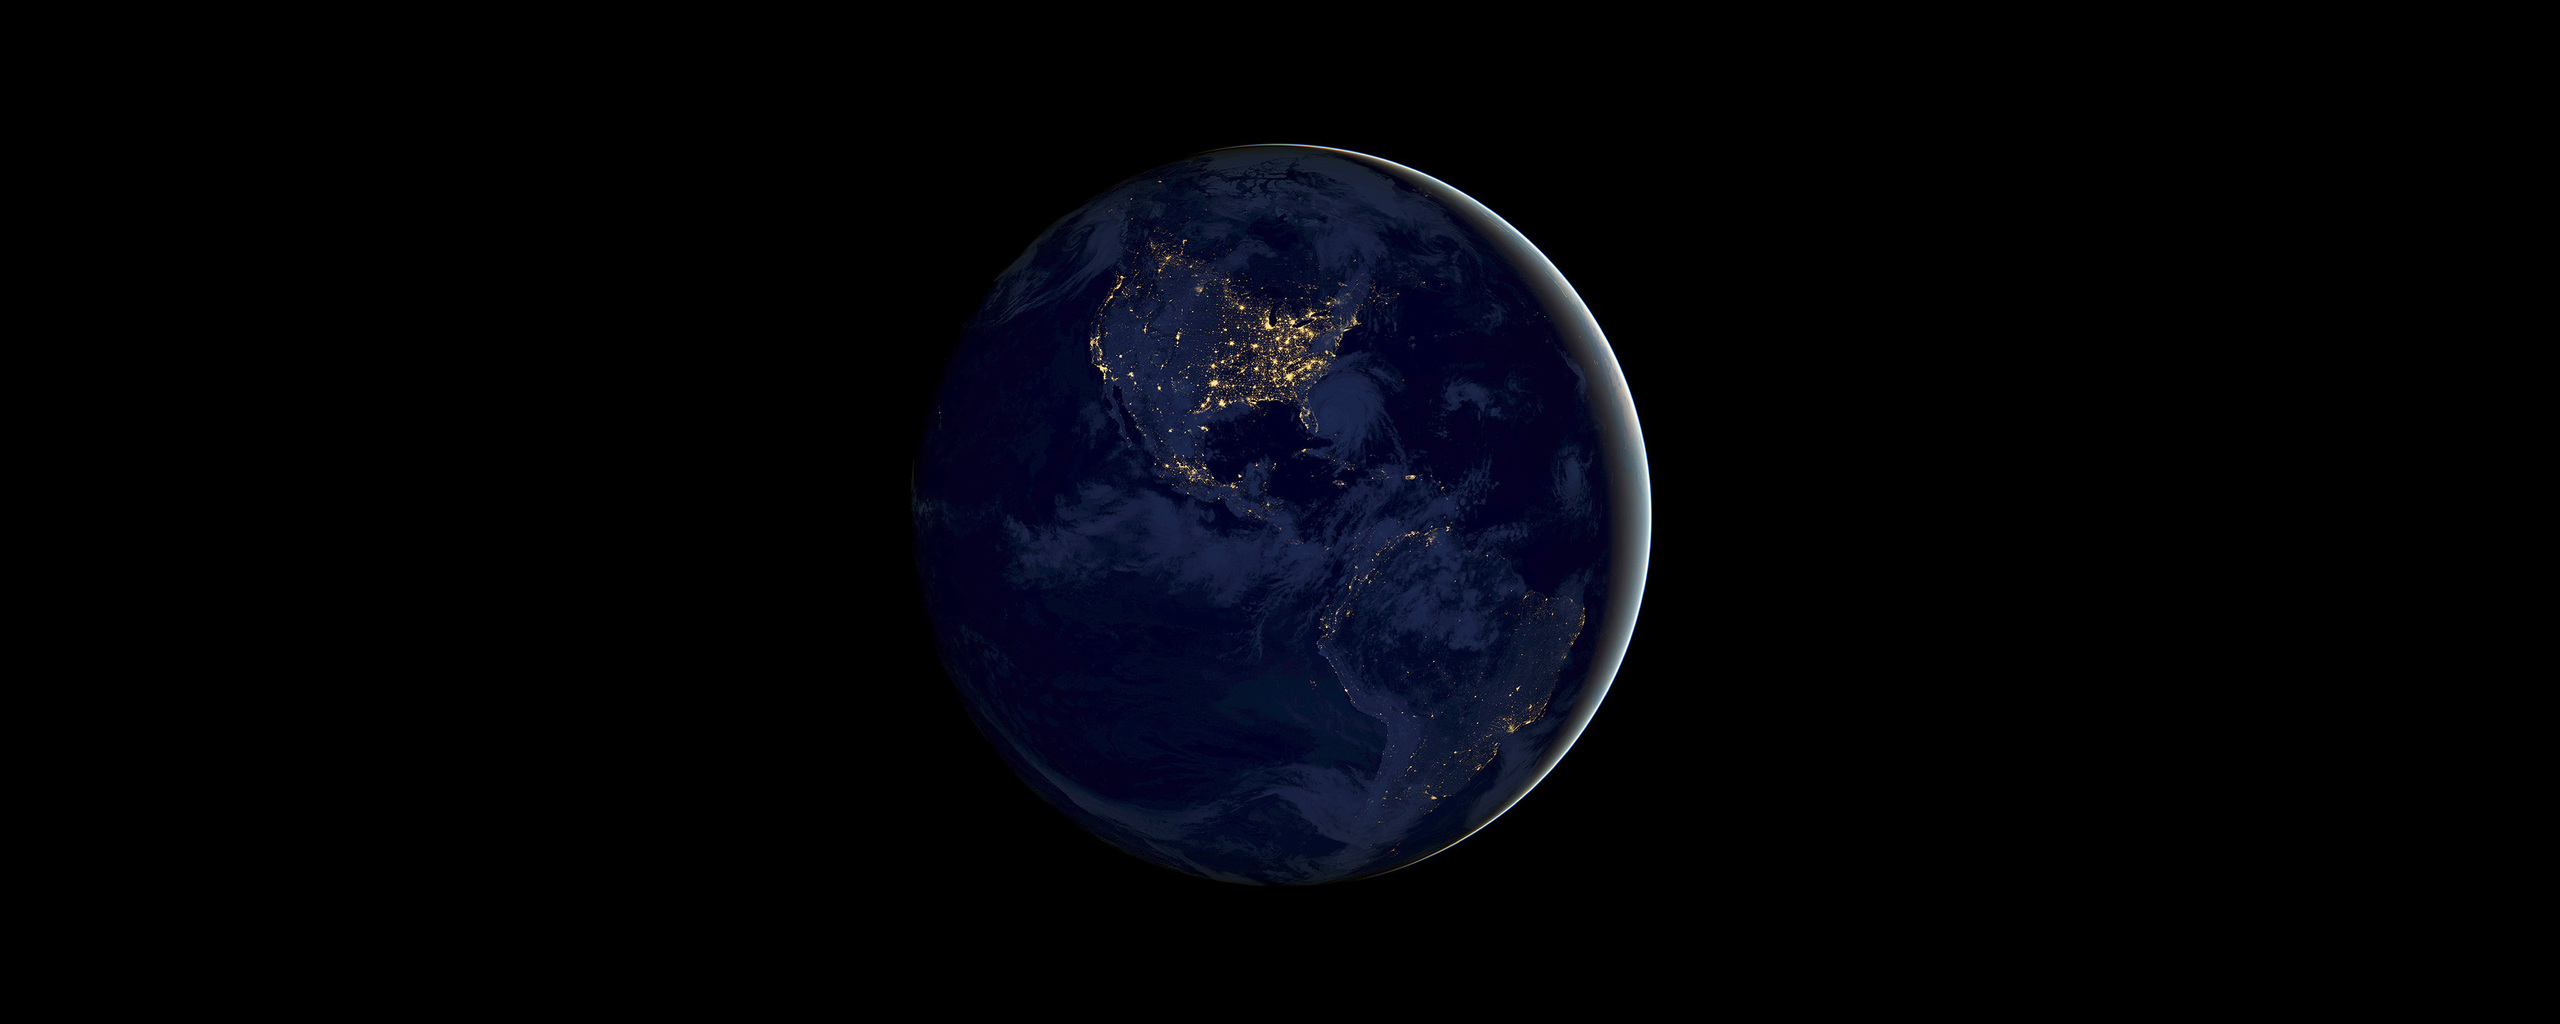 ios-11-earth-night-4k-pe.jpg